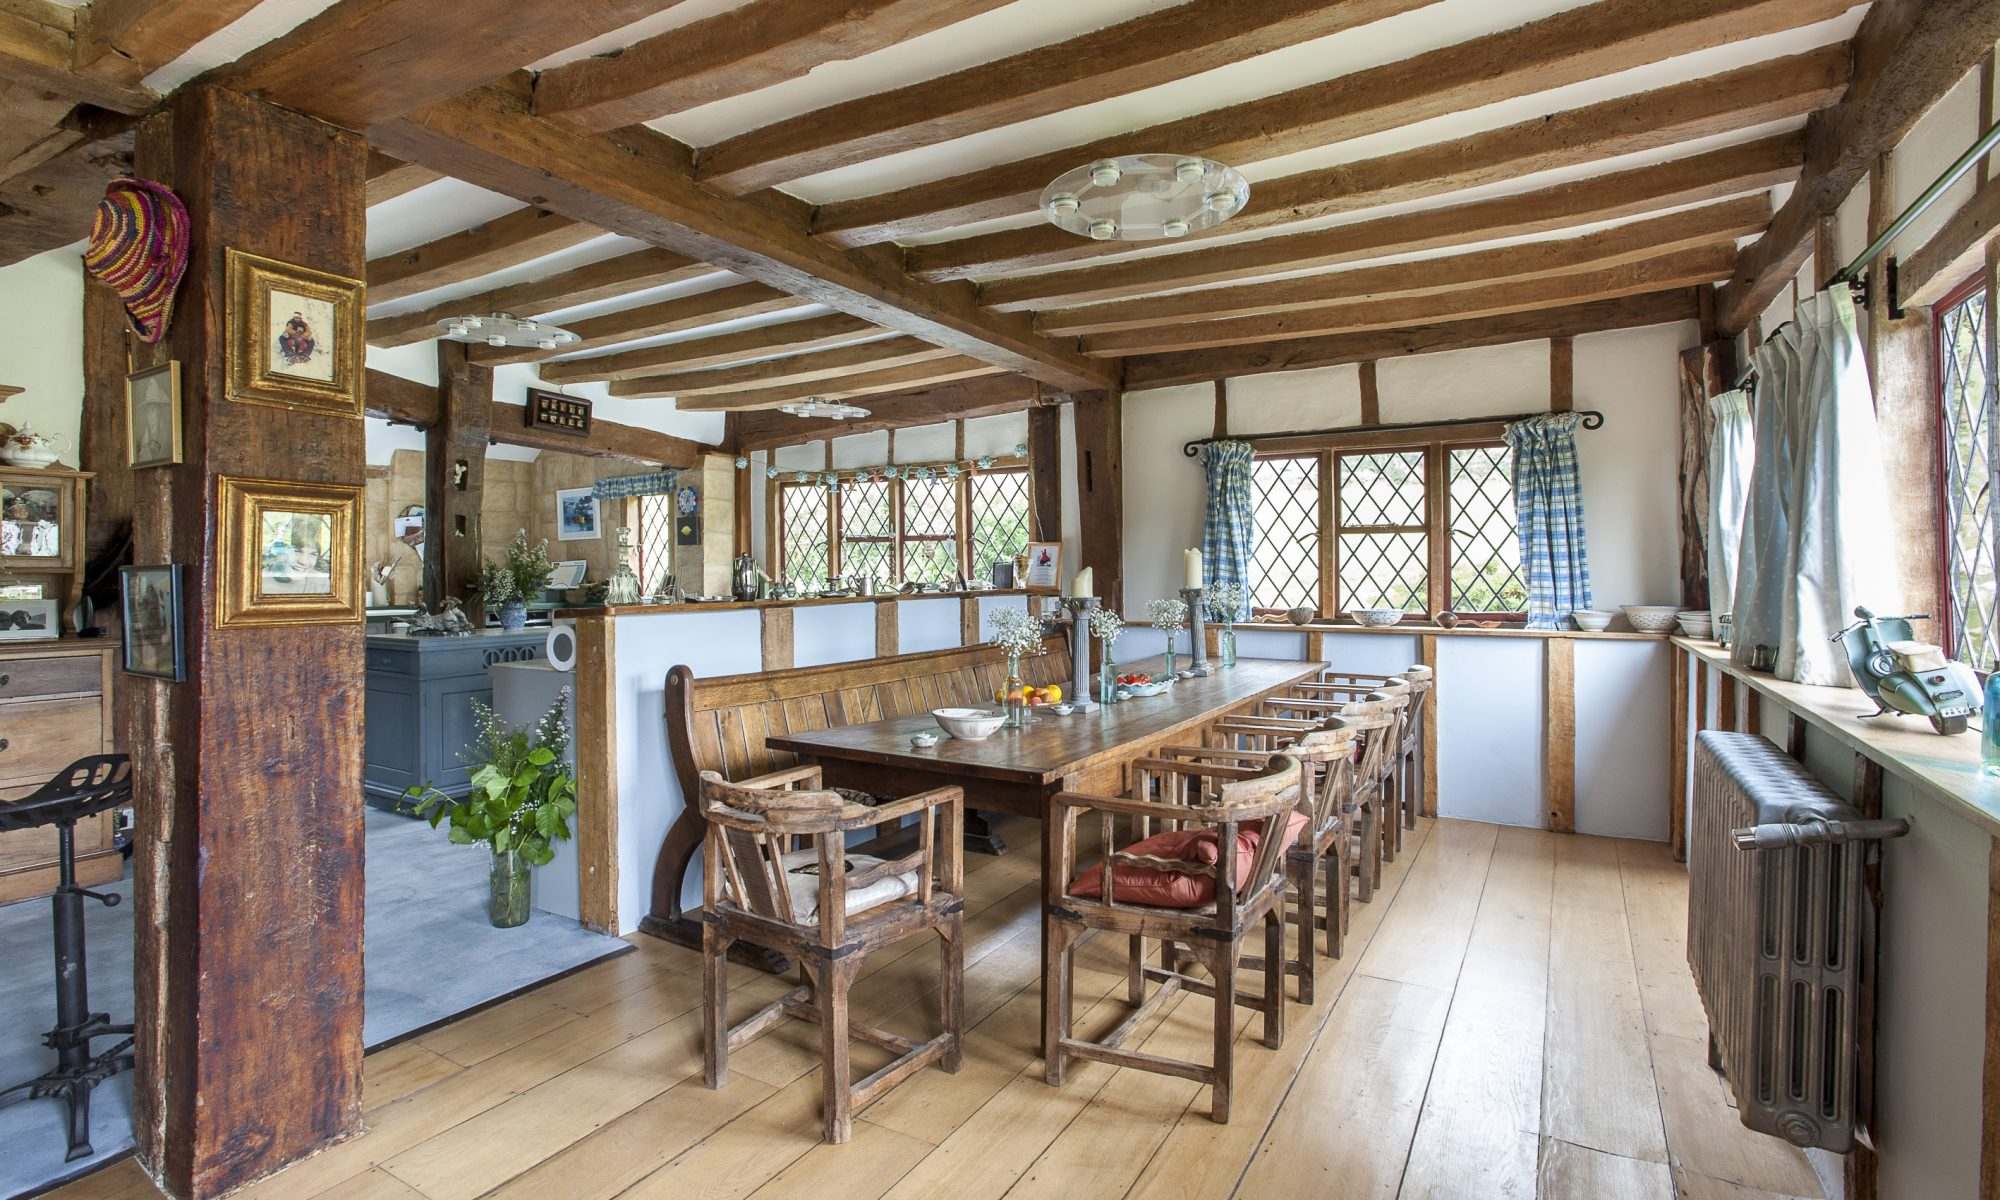 Peter and Jilly Burnet's spacious farmhouse has provided the couple with a glorious family home for over twenty years. Spread over three floors, this stunning property has borne witness to many a party, celebration and even church fêtes...